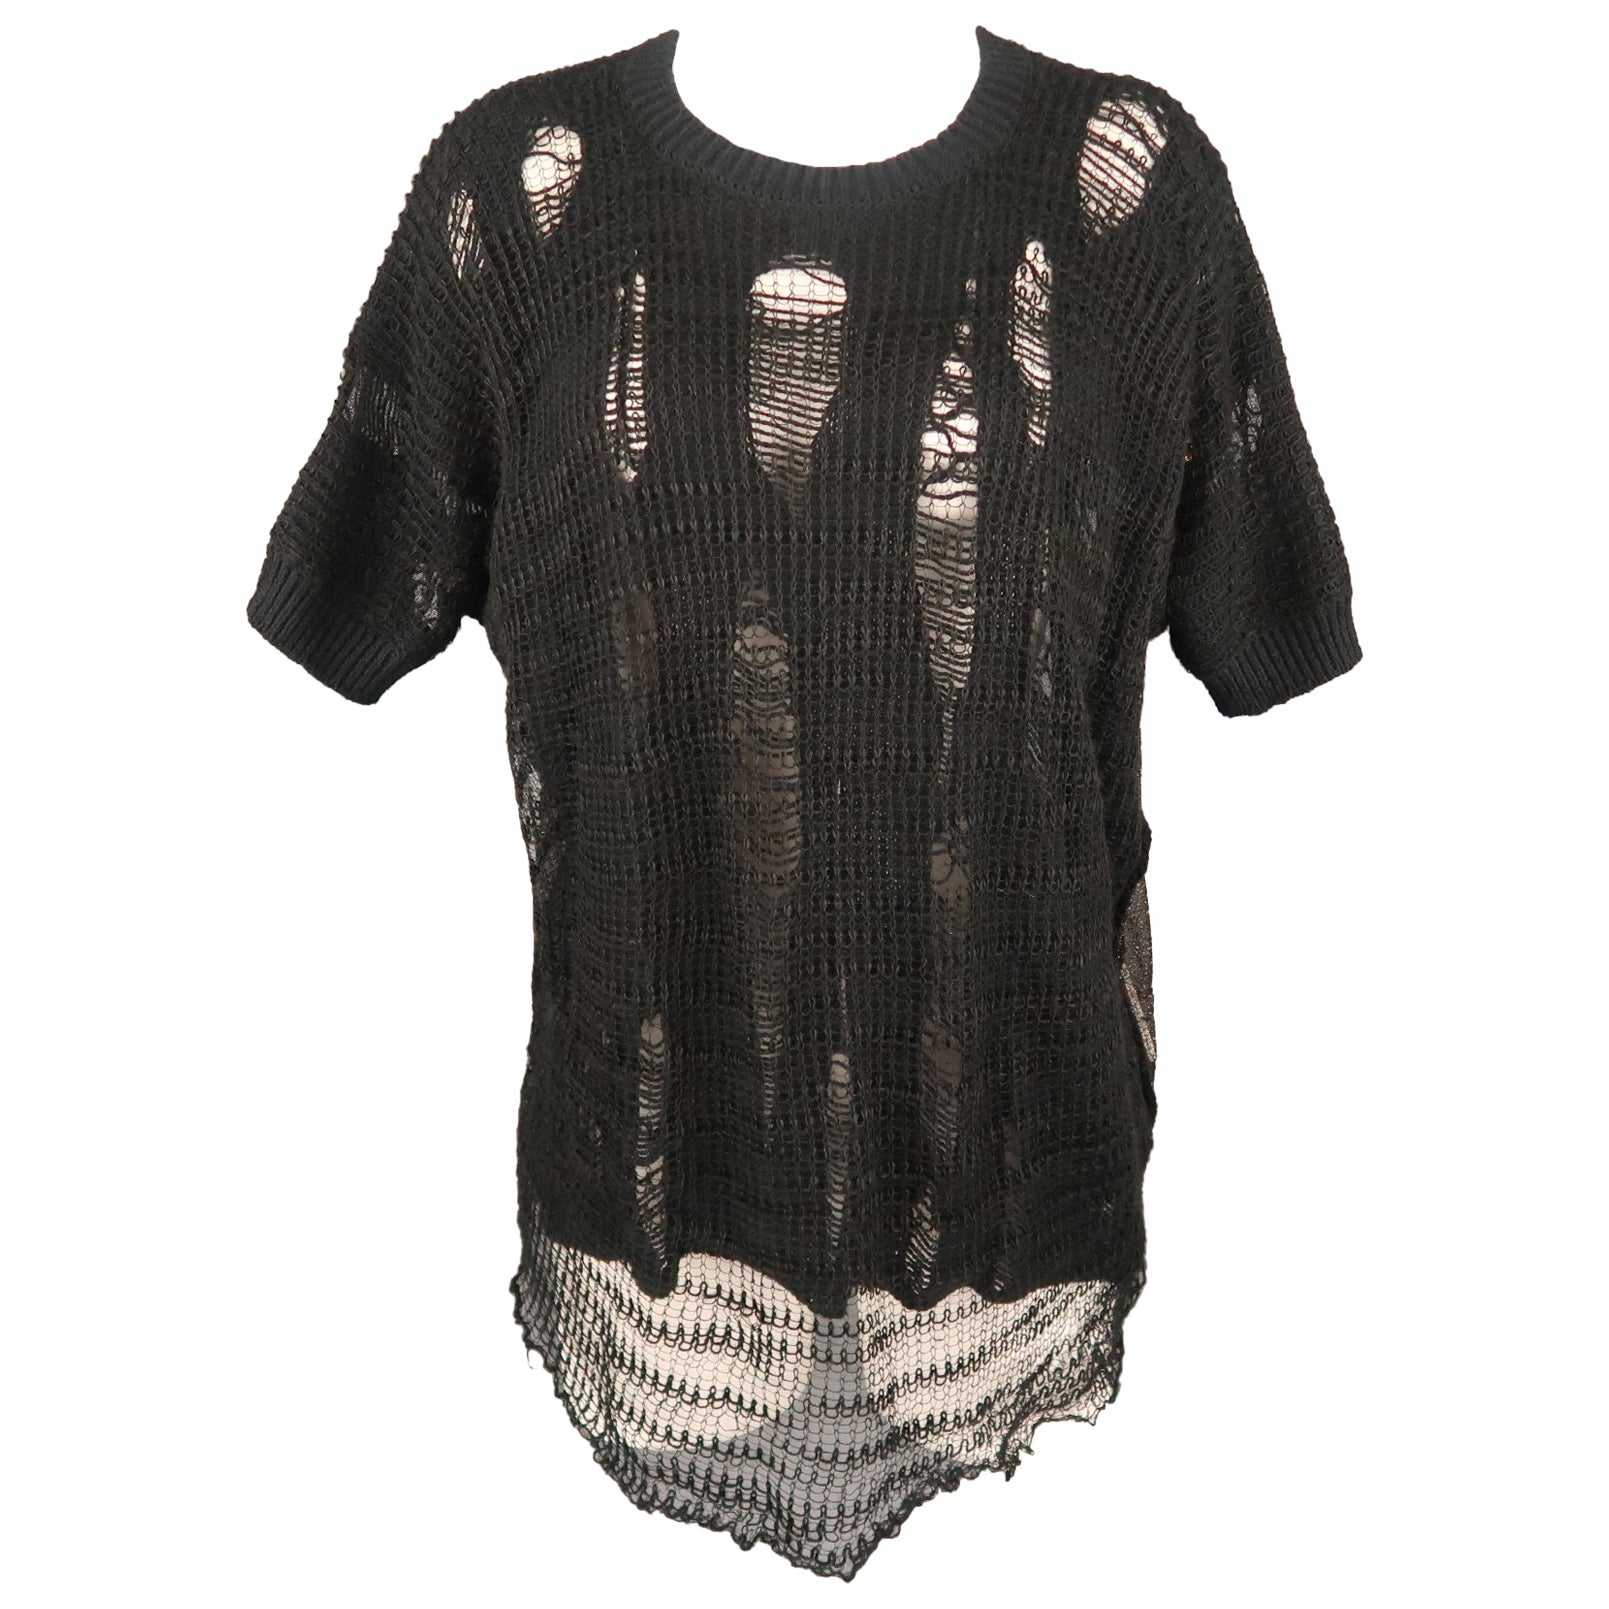 JUNYA WATANABE Size M Black Distressed Knit Short Sleeve Pullover